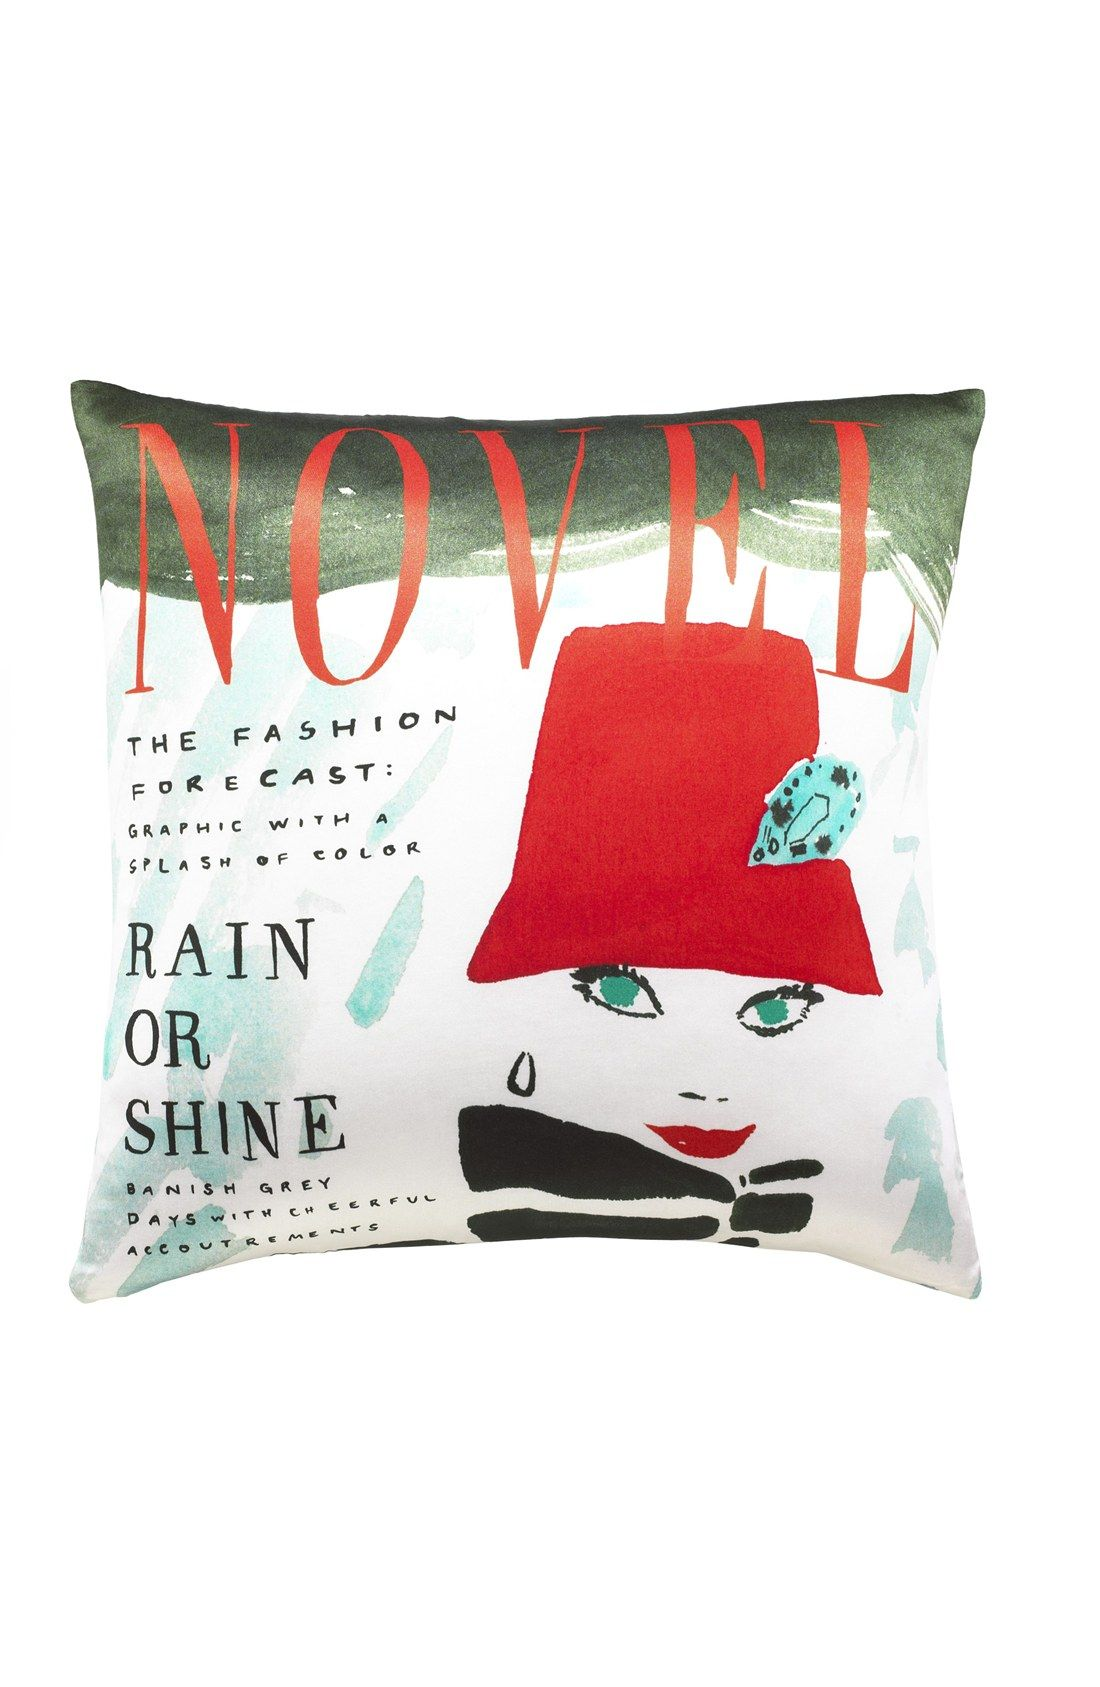 Kate spade new york urain or shineu accent pillow one pillow two